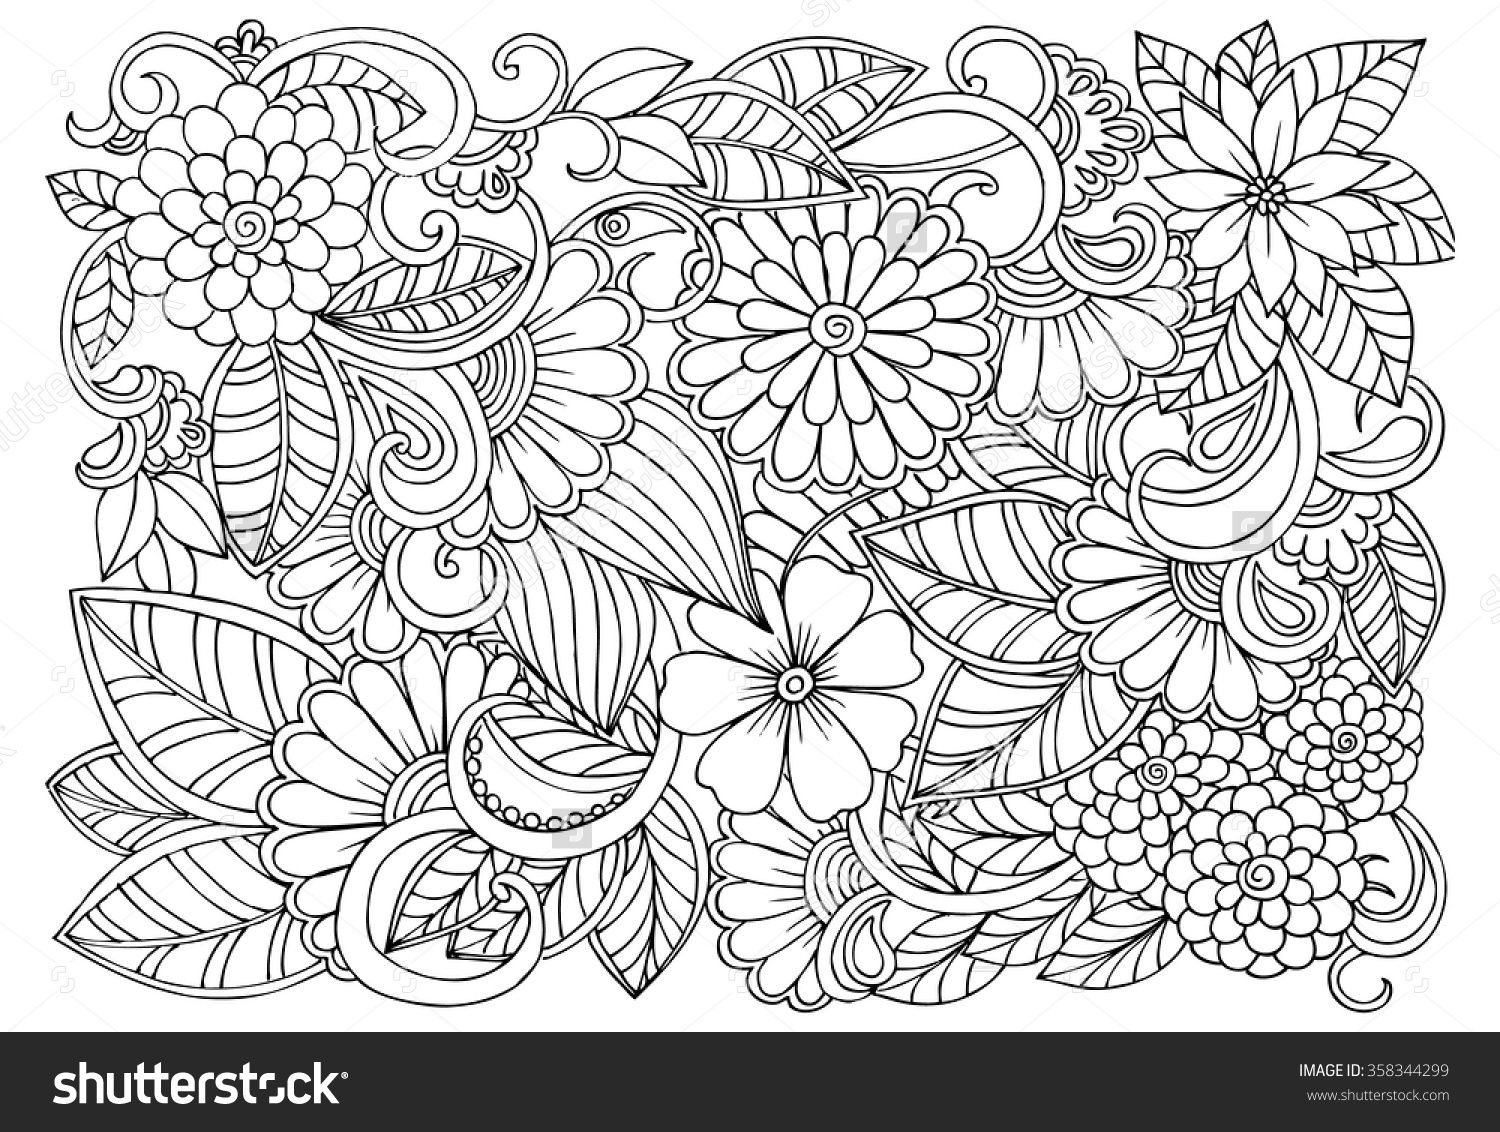 Coloring Pages Of Flower Designs With Flower Designs Coloring Pages